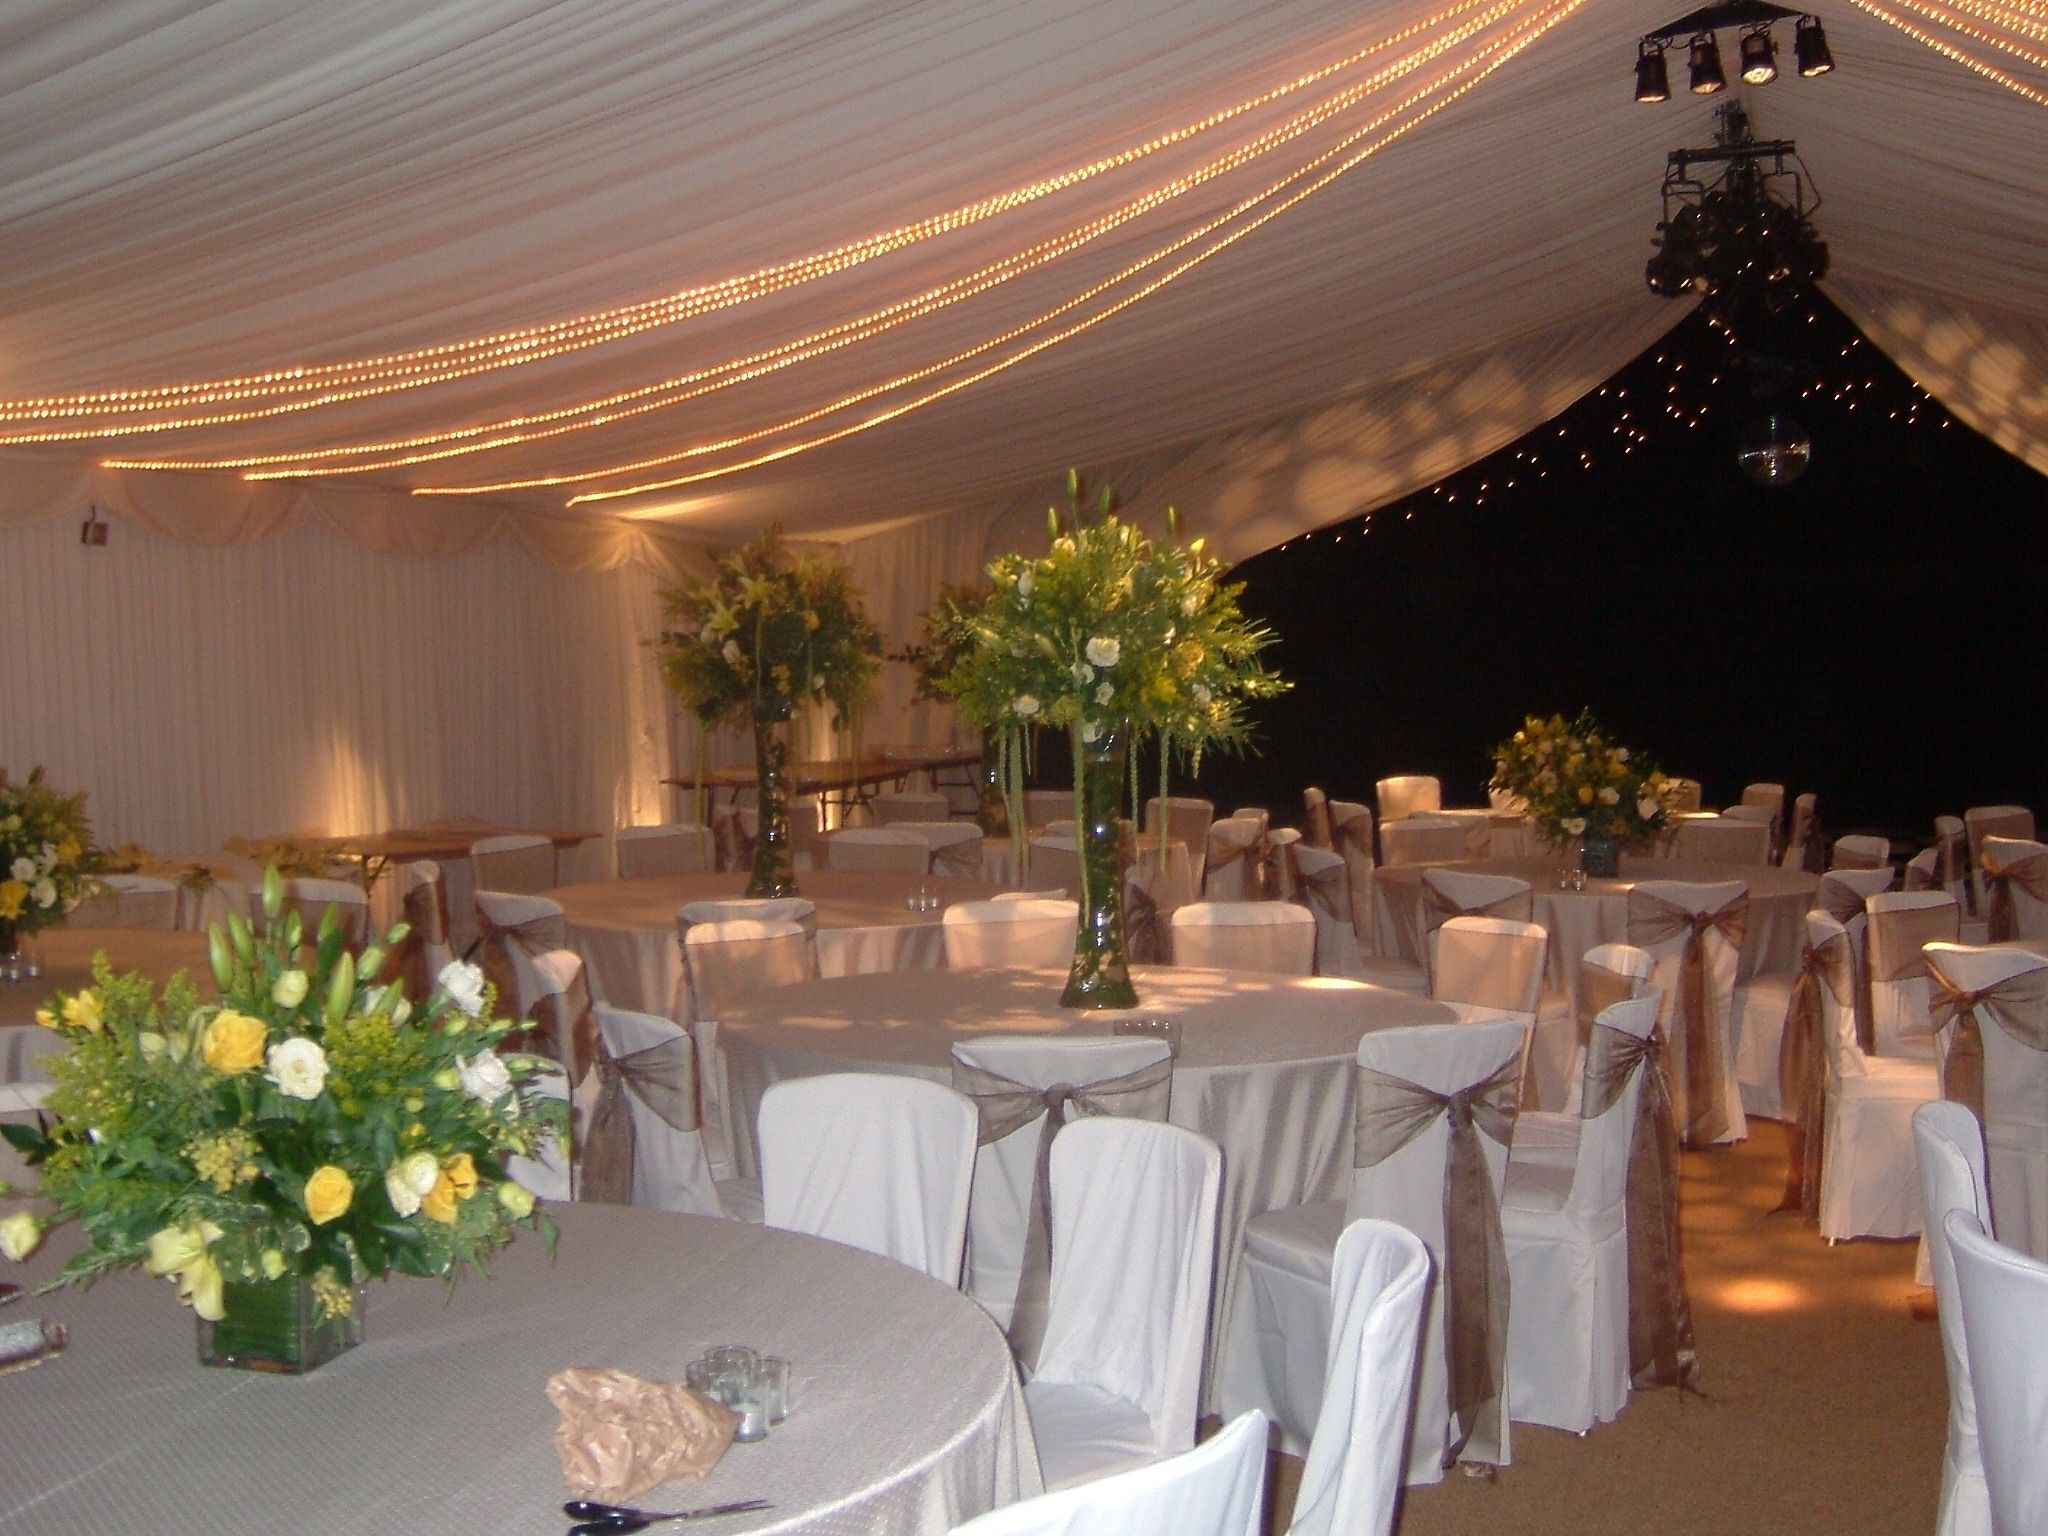 Lighting Makes A Marquee Look So Beautiful Especially In The Winter For A Wedding Or A Winter Wedding Inspiration Winter Wedding Wedding Inspiration